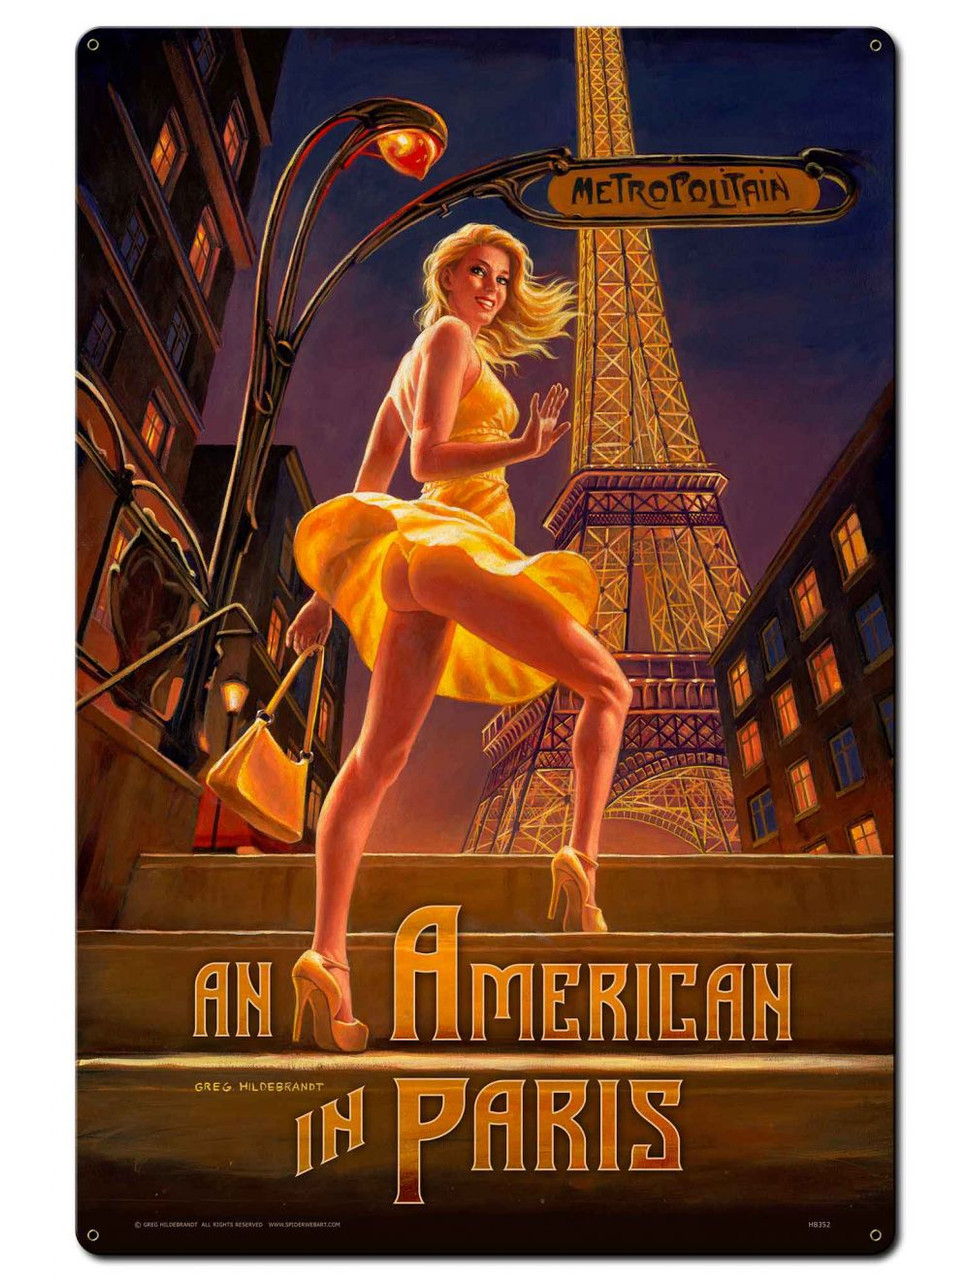 American in Paris Pinup Girl Metal Sign 24 x 36 Inches